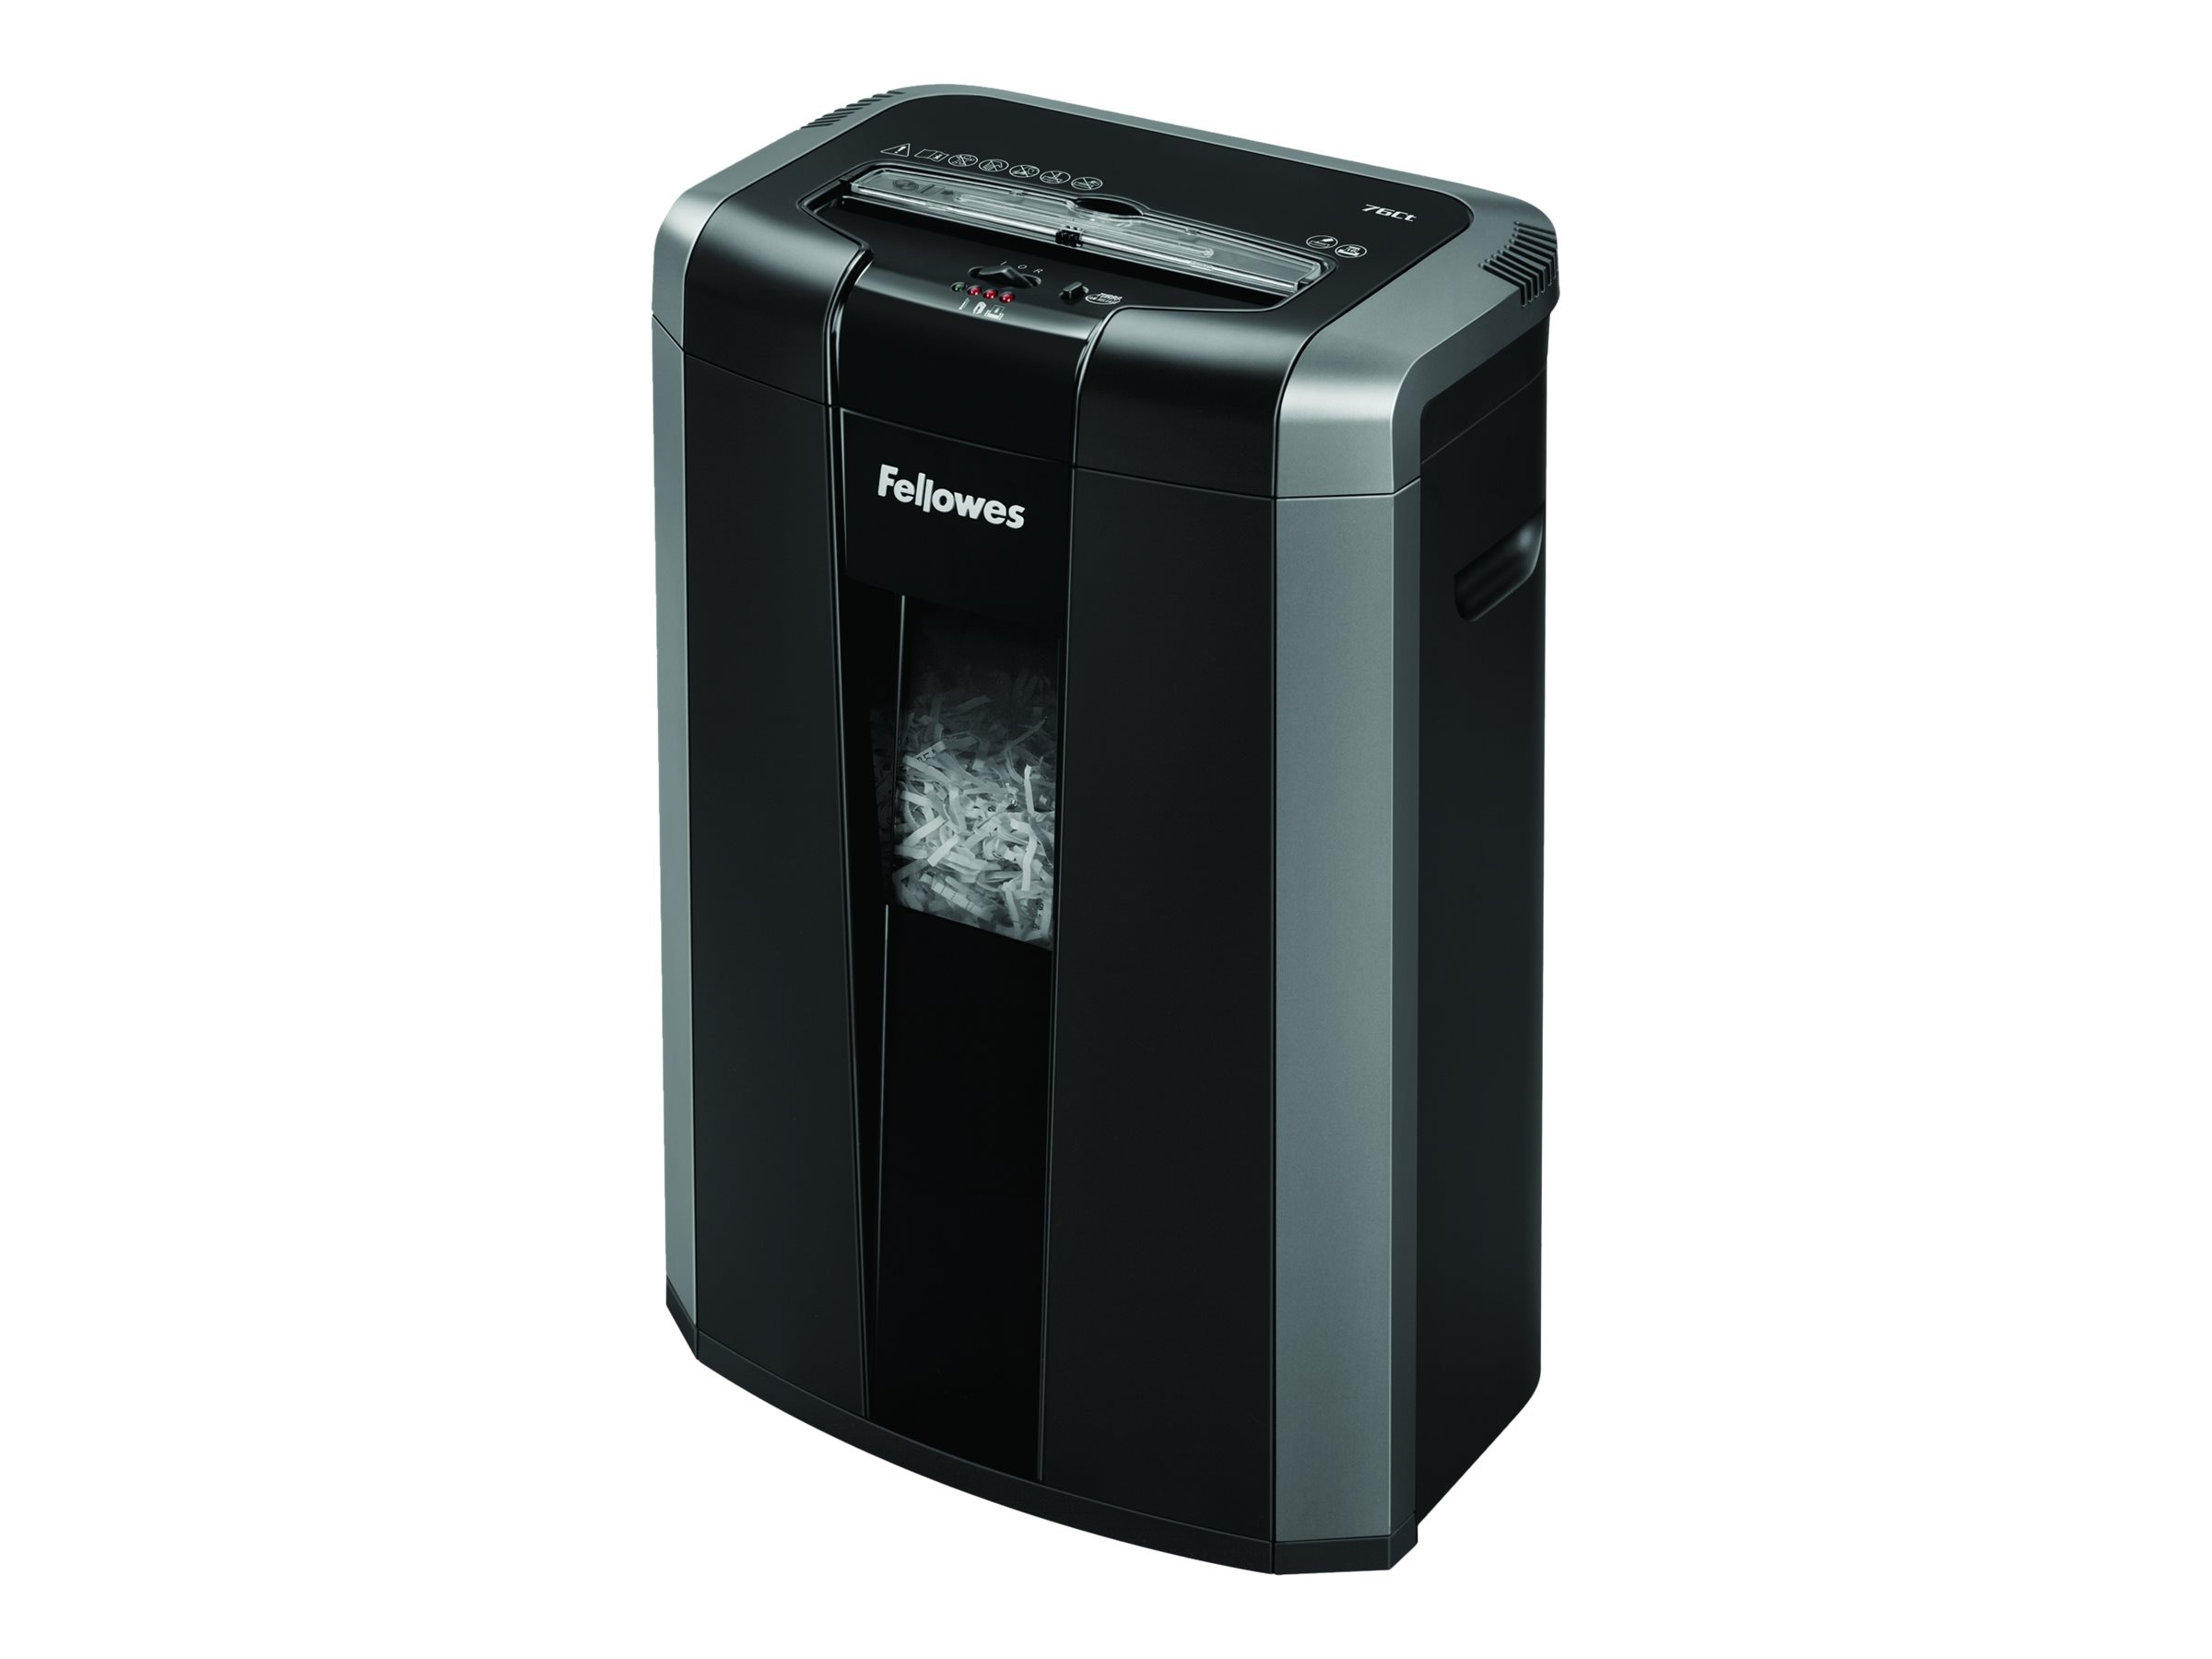 Fellowes 4676001 Image 1